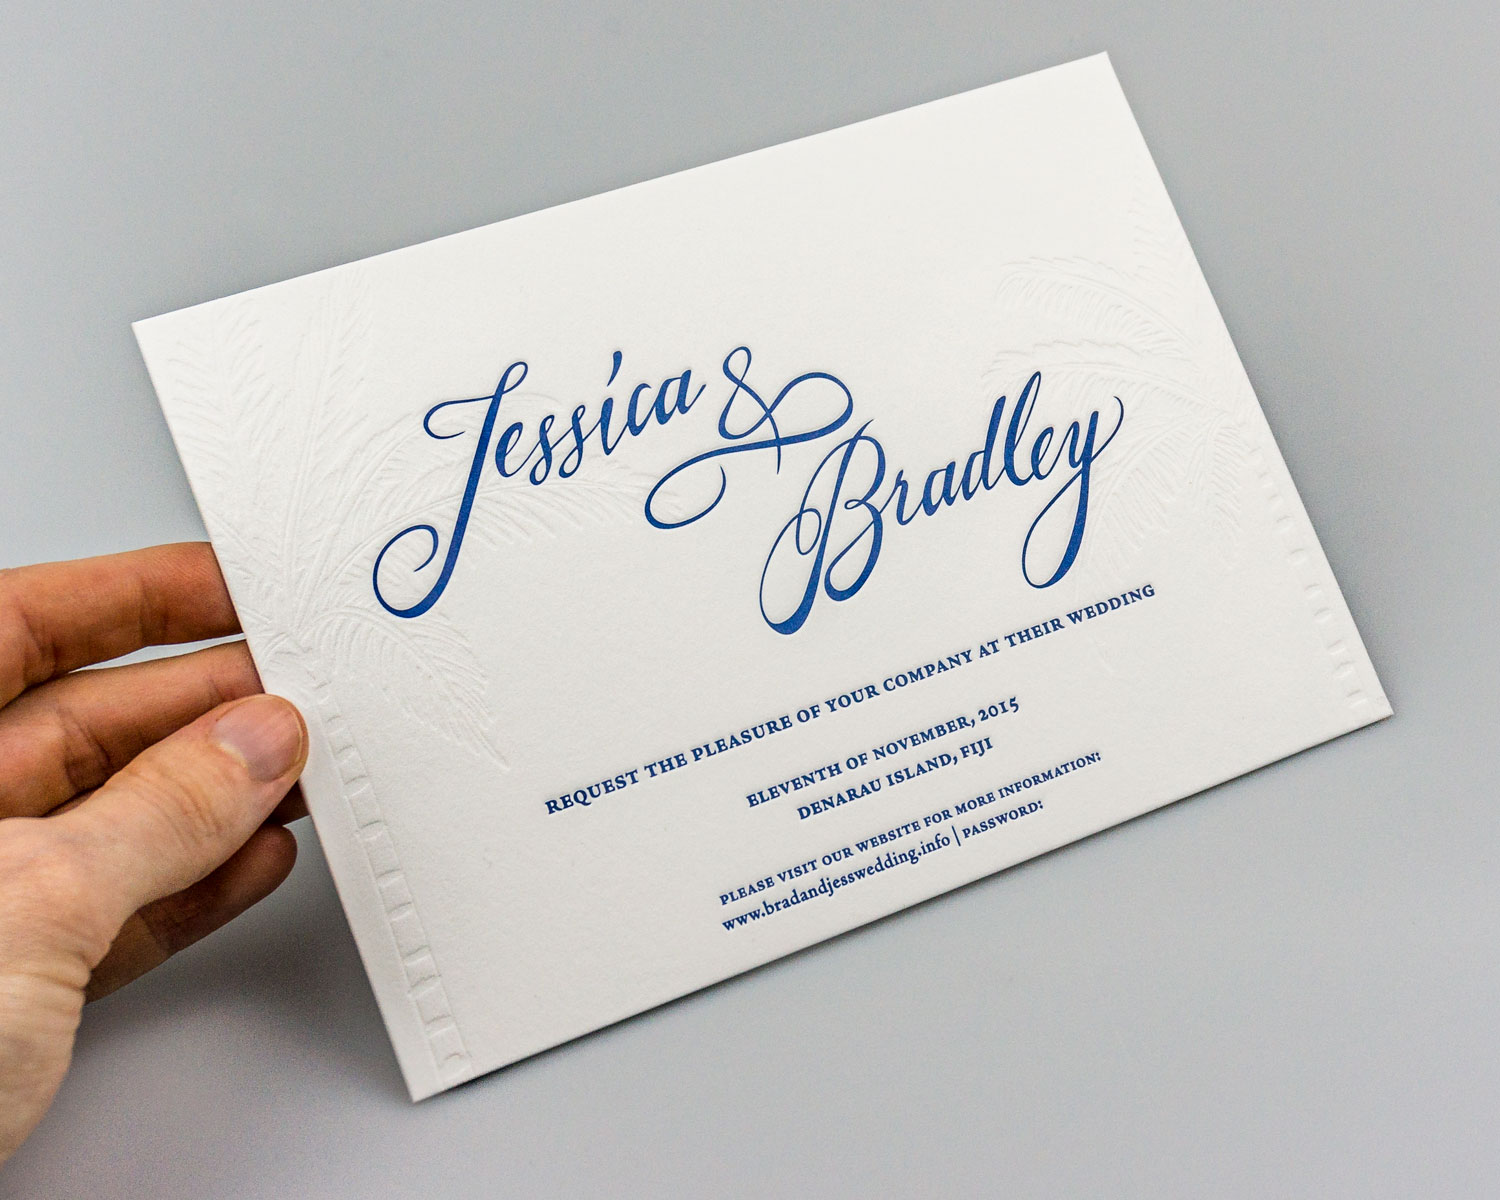 BRAD + JESS WEDDING INVITATIONS | alison richards | graphic designer ...